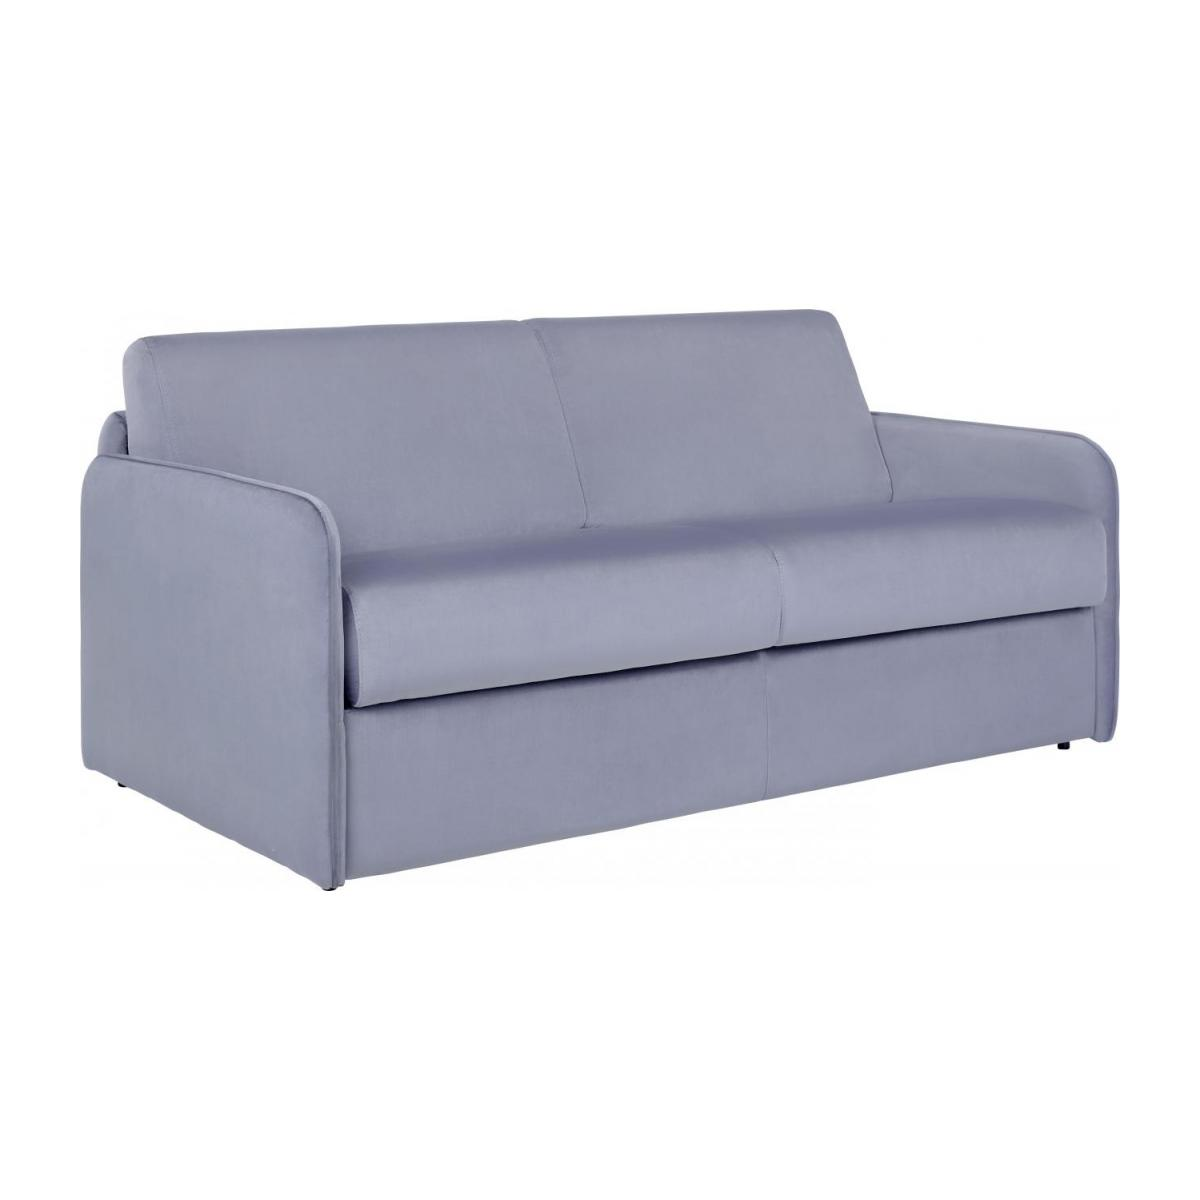 Grey Velvet 3 Seat Fold Out Sofa